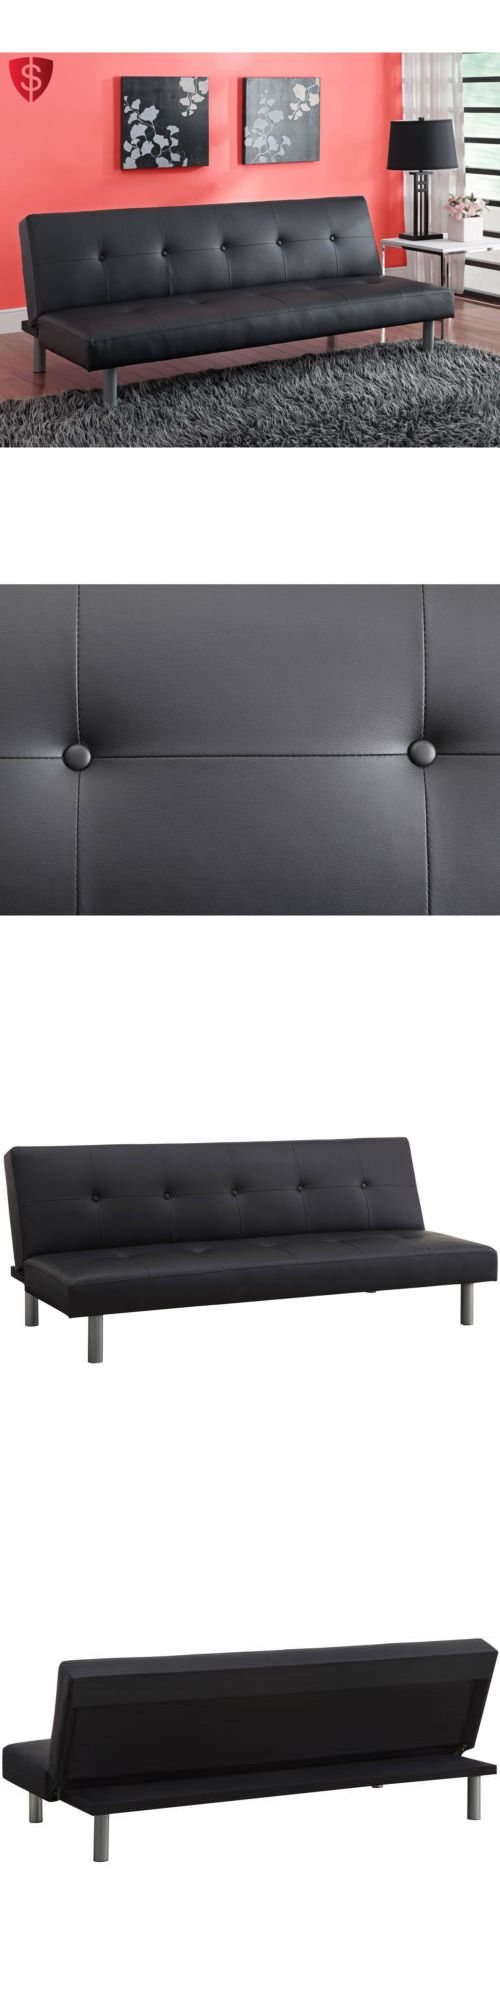 Futons Frames and Covers 131579: Sofa Bed Mattress Sleeper Couch Sleep Foam Furniture Leather Tufted Lounge -> BUY IT NOW ONLY: $173.5 on eBay!